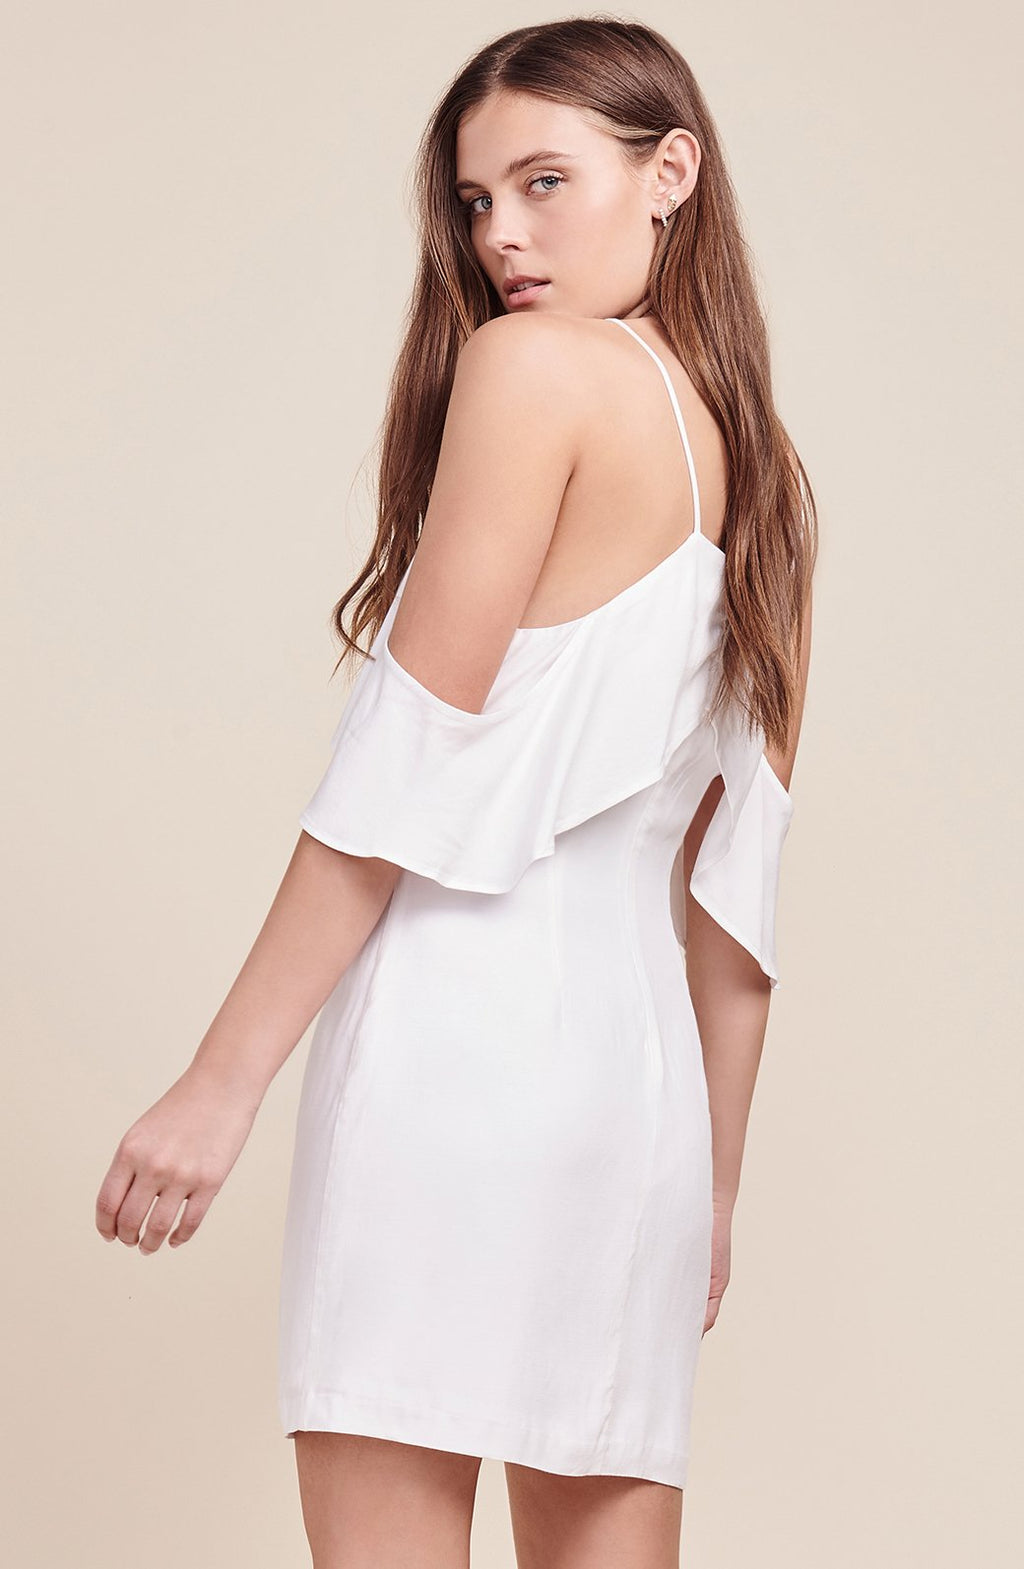 BB Dakota Kaless Off The Shoulder Ruffle Dress - White - Calico